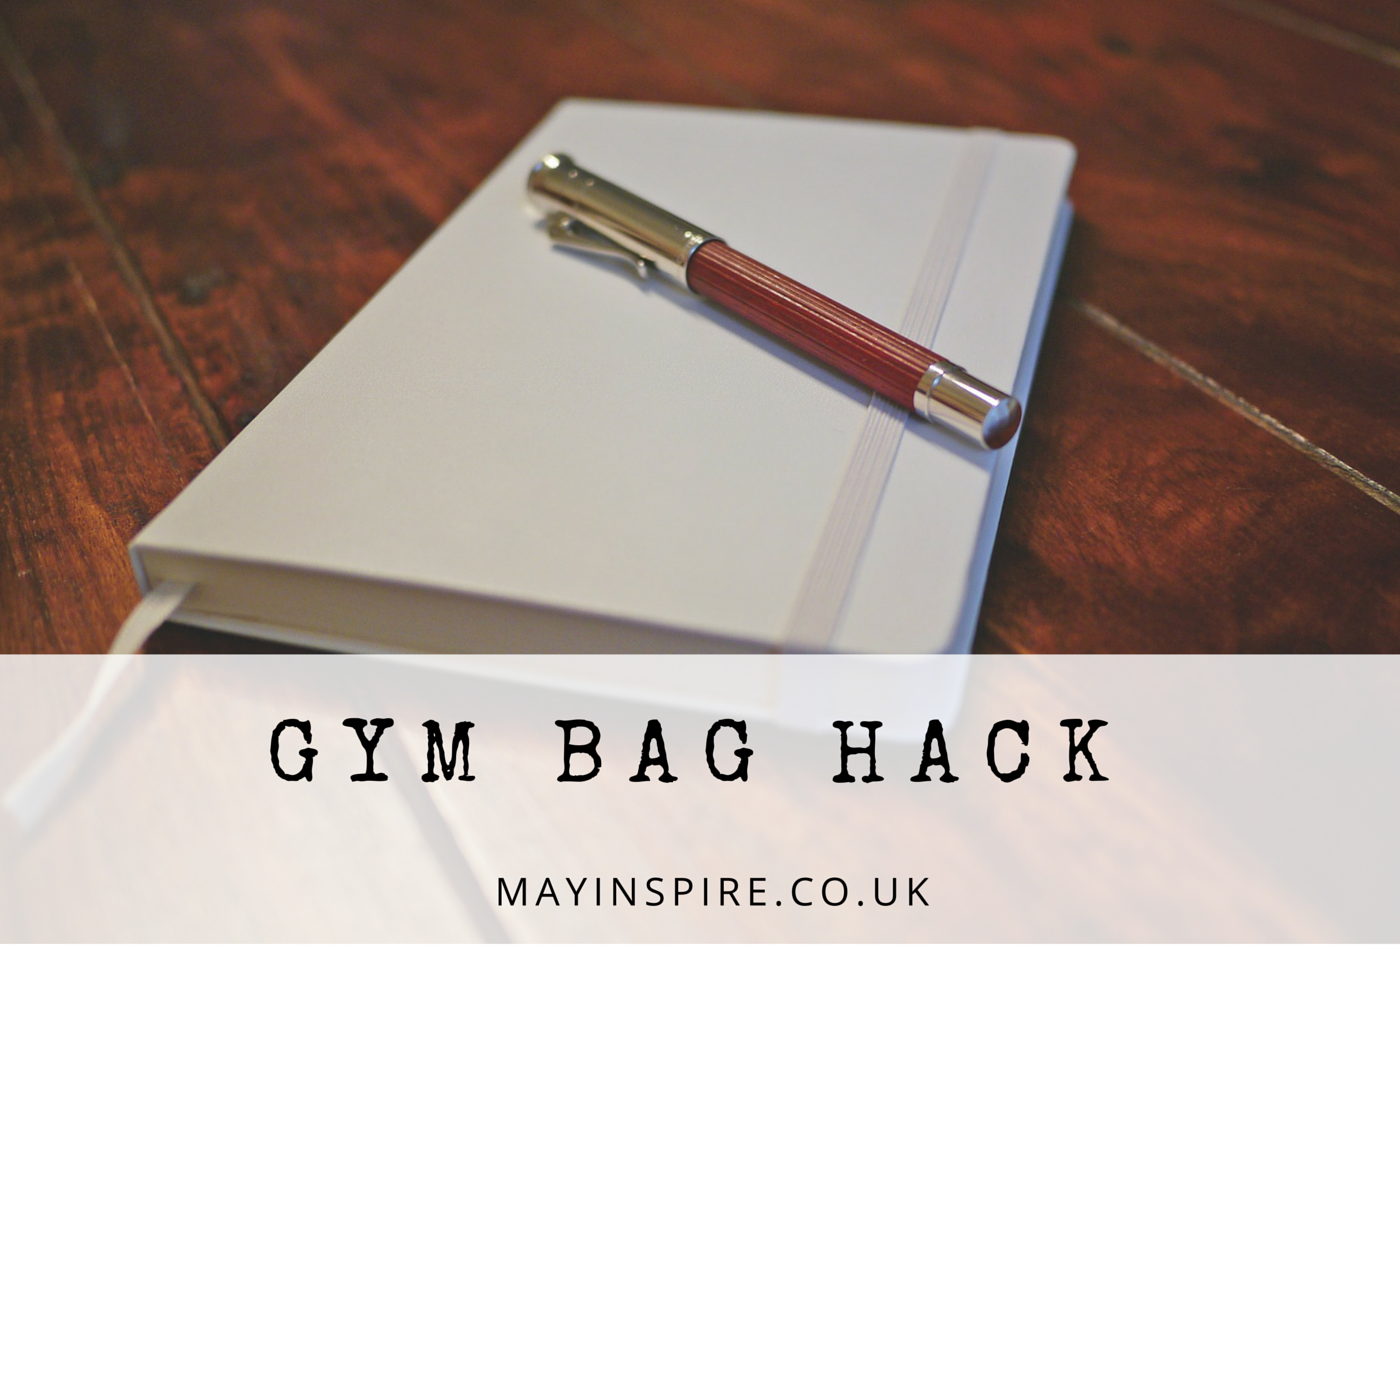 Don't forget your hair bands and water for the gym ever again!  I have made a list of all the things I need for the gym, and whiz through it while packing my gym bag up. The rest of the book is great for fitness records and goals!   🍸 ✂